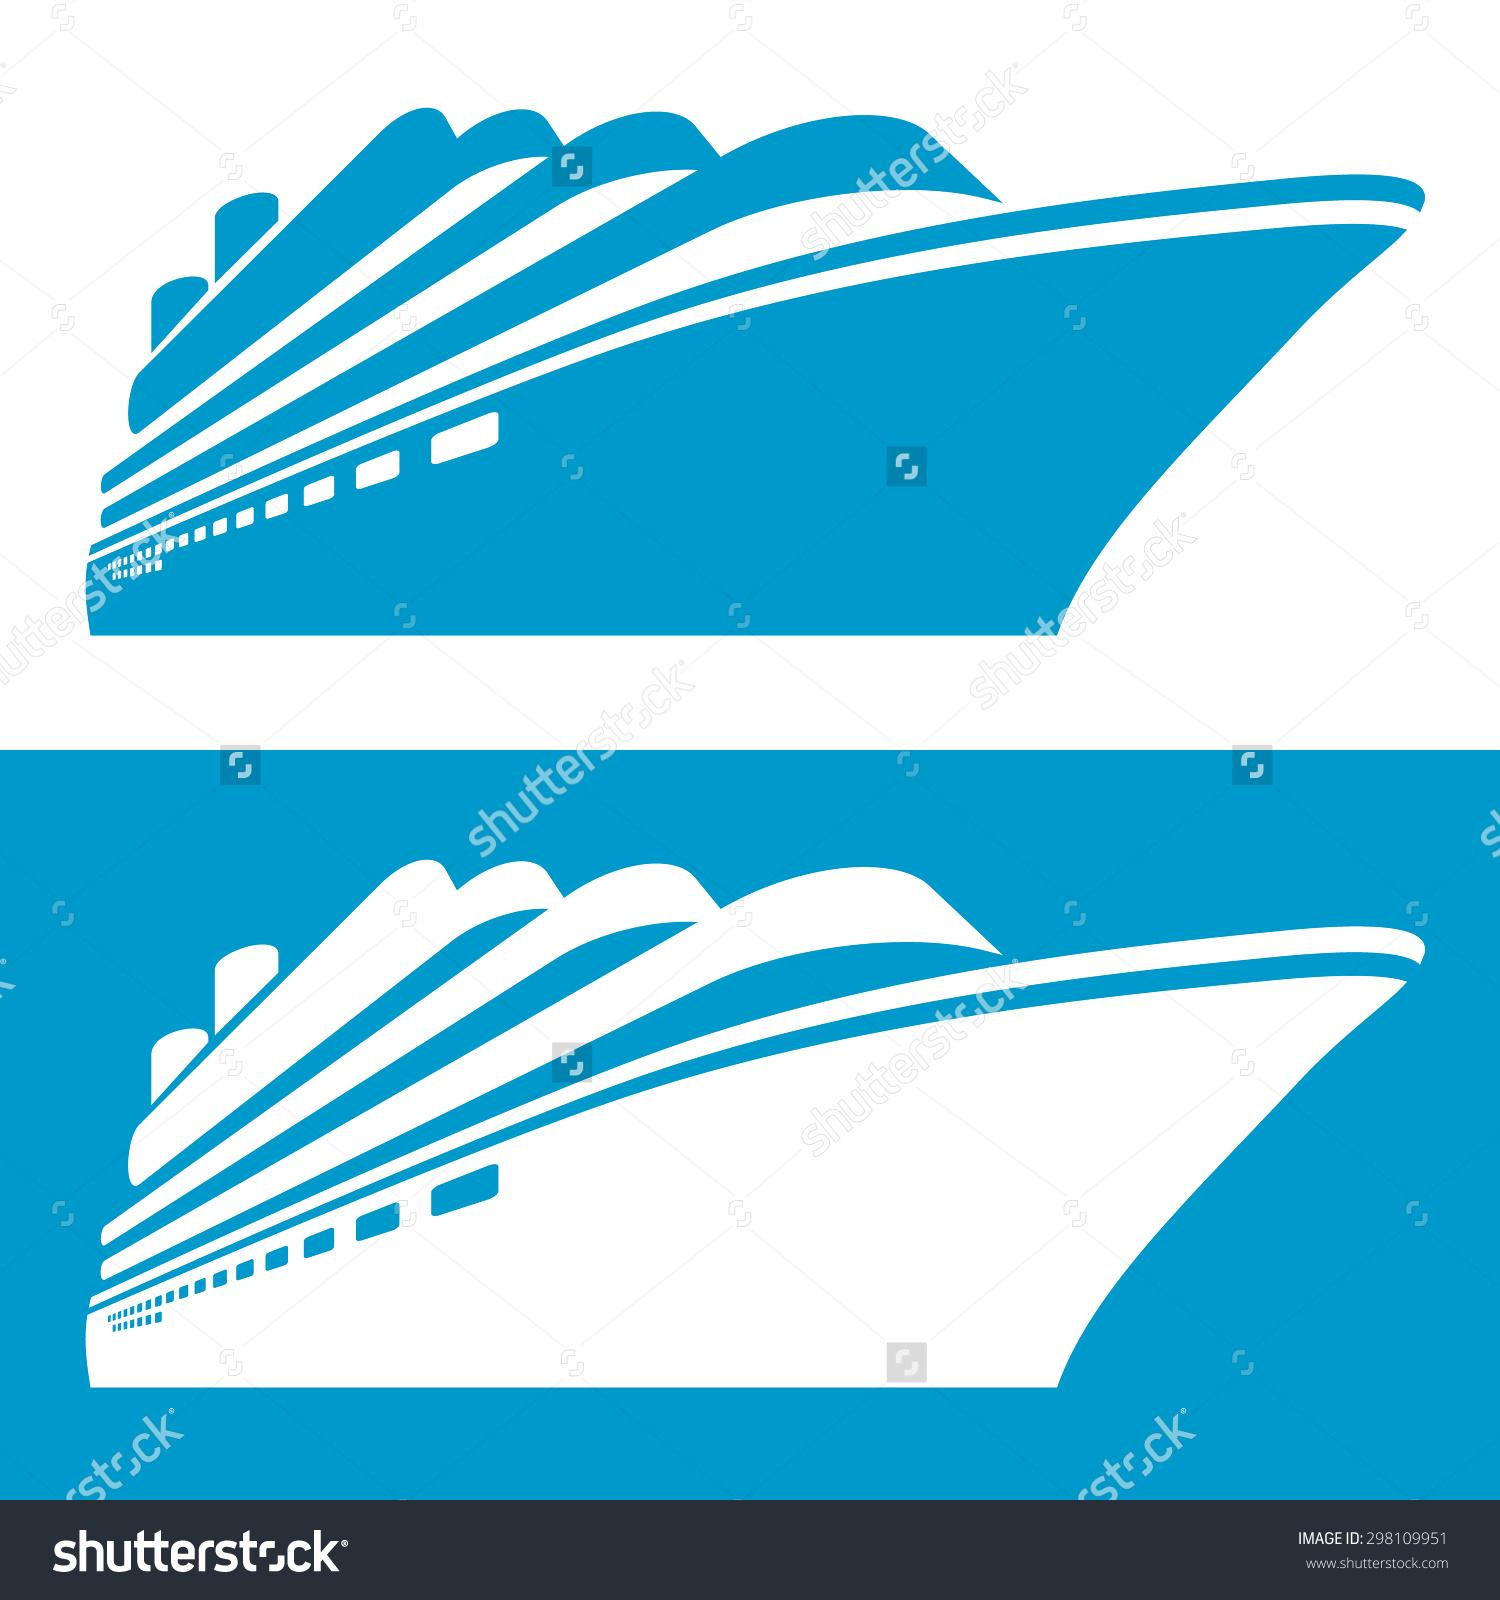 Cruise Ship Silhouette At Getdrawings Com Free For